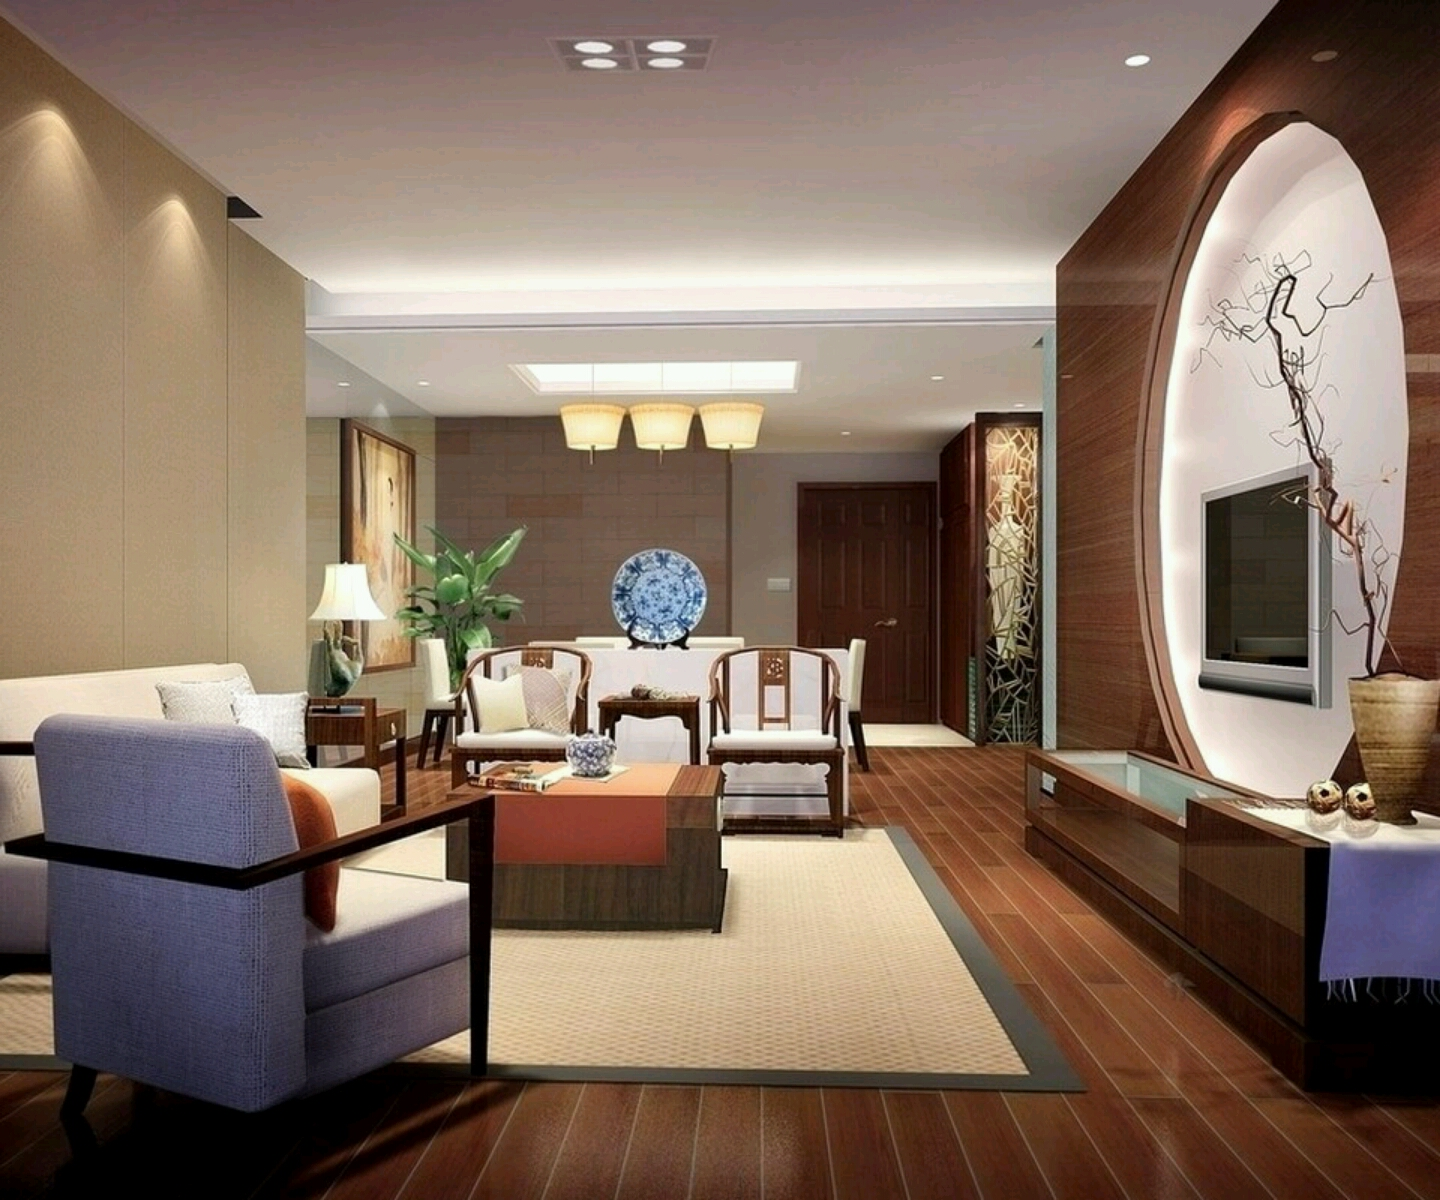 Luxury homes interior decoration living room designs ideas for Design ideas living room